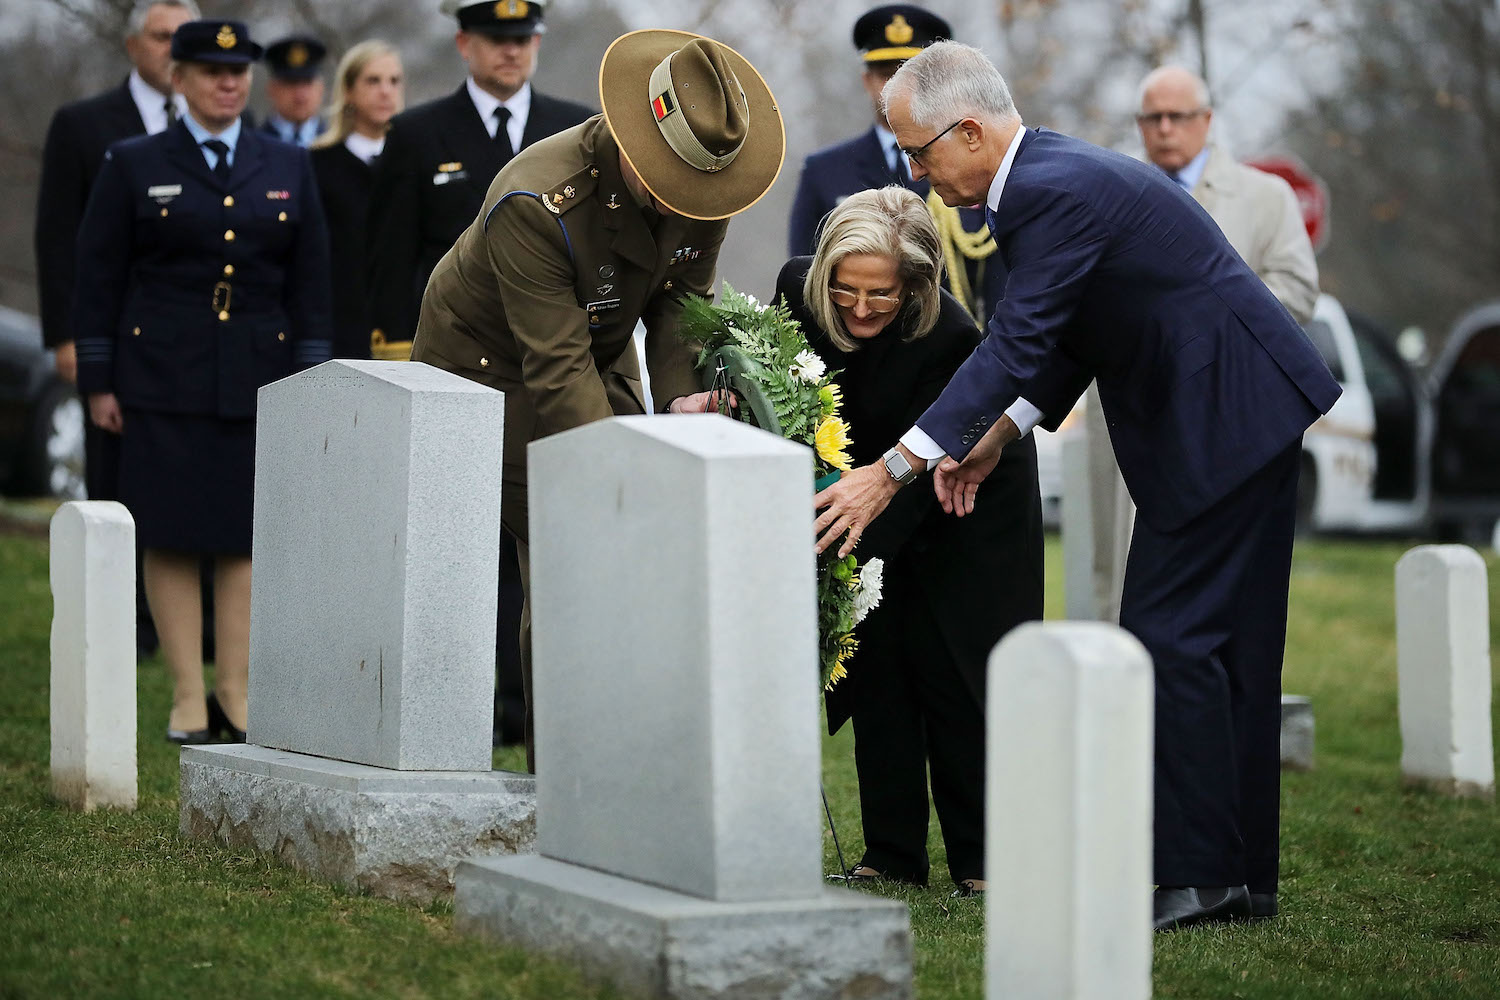 Australian Prime Minister Malcolm Turnbull (right) and his wife Lucy Turnbull (center) are assisted by Australian Army Lt. Col. Adrian Trappett as they lay a wreath the grave of Royal Australian Air Force Pilot Francis D. Milne at Arlington National Cemetery in Arlington, Virginia on Feb. 22. (Chip Somodevilla/Getty Images)